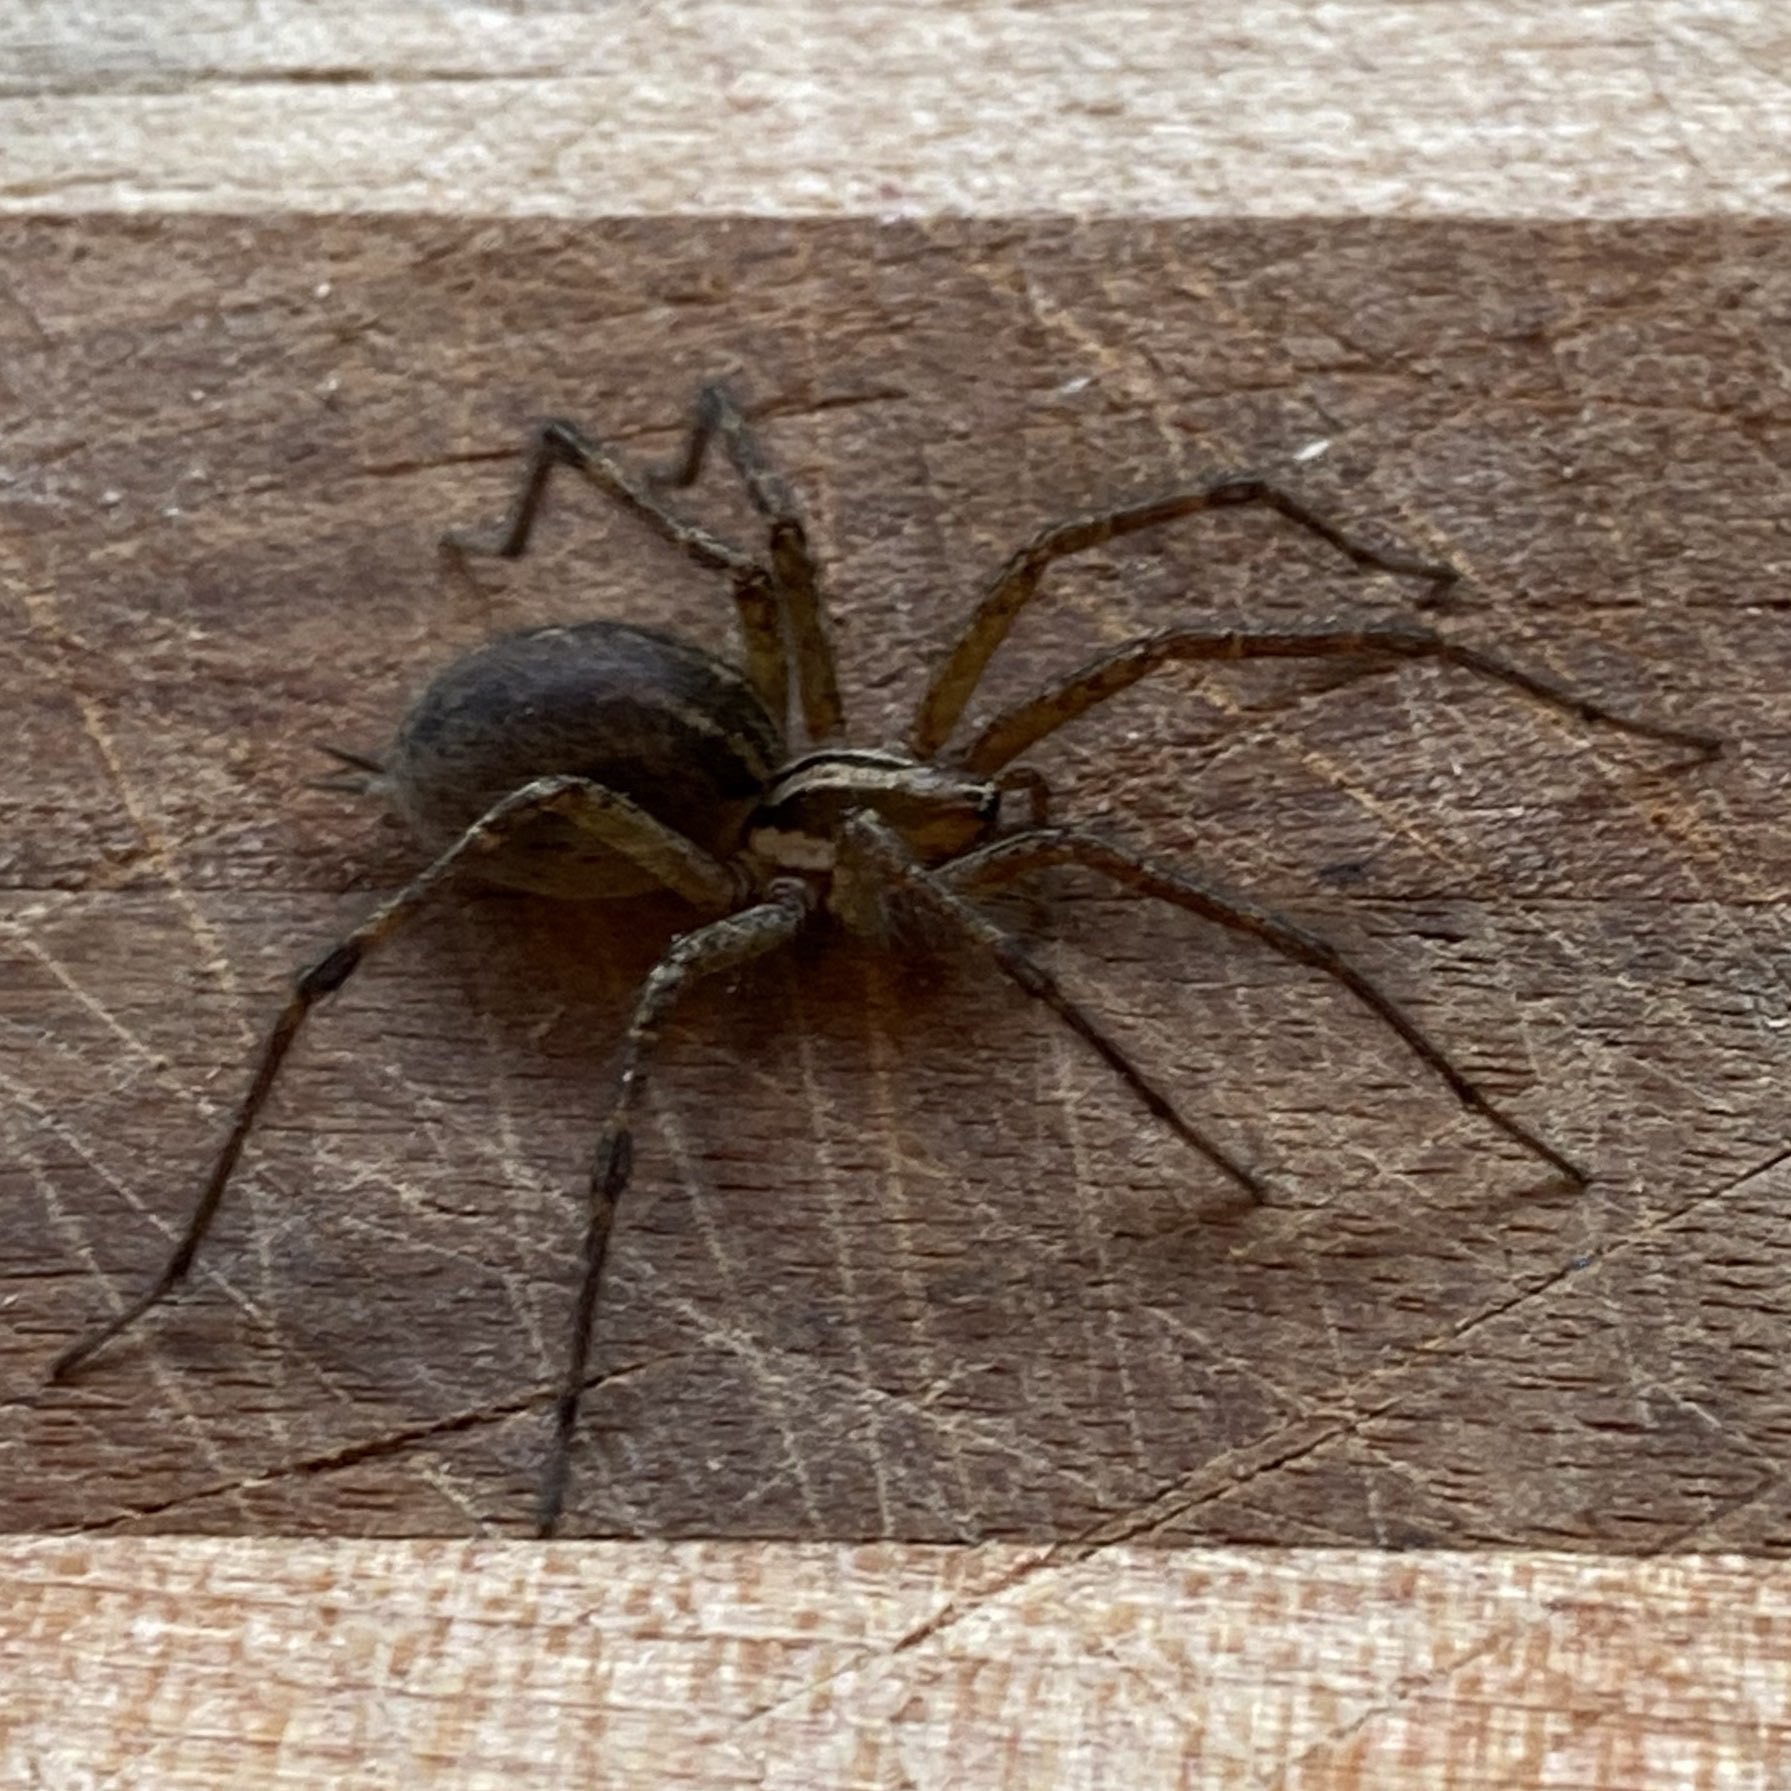 large brown spider on a cutting board